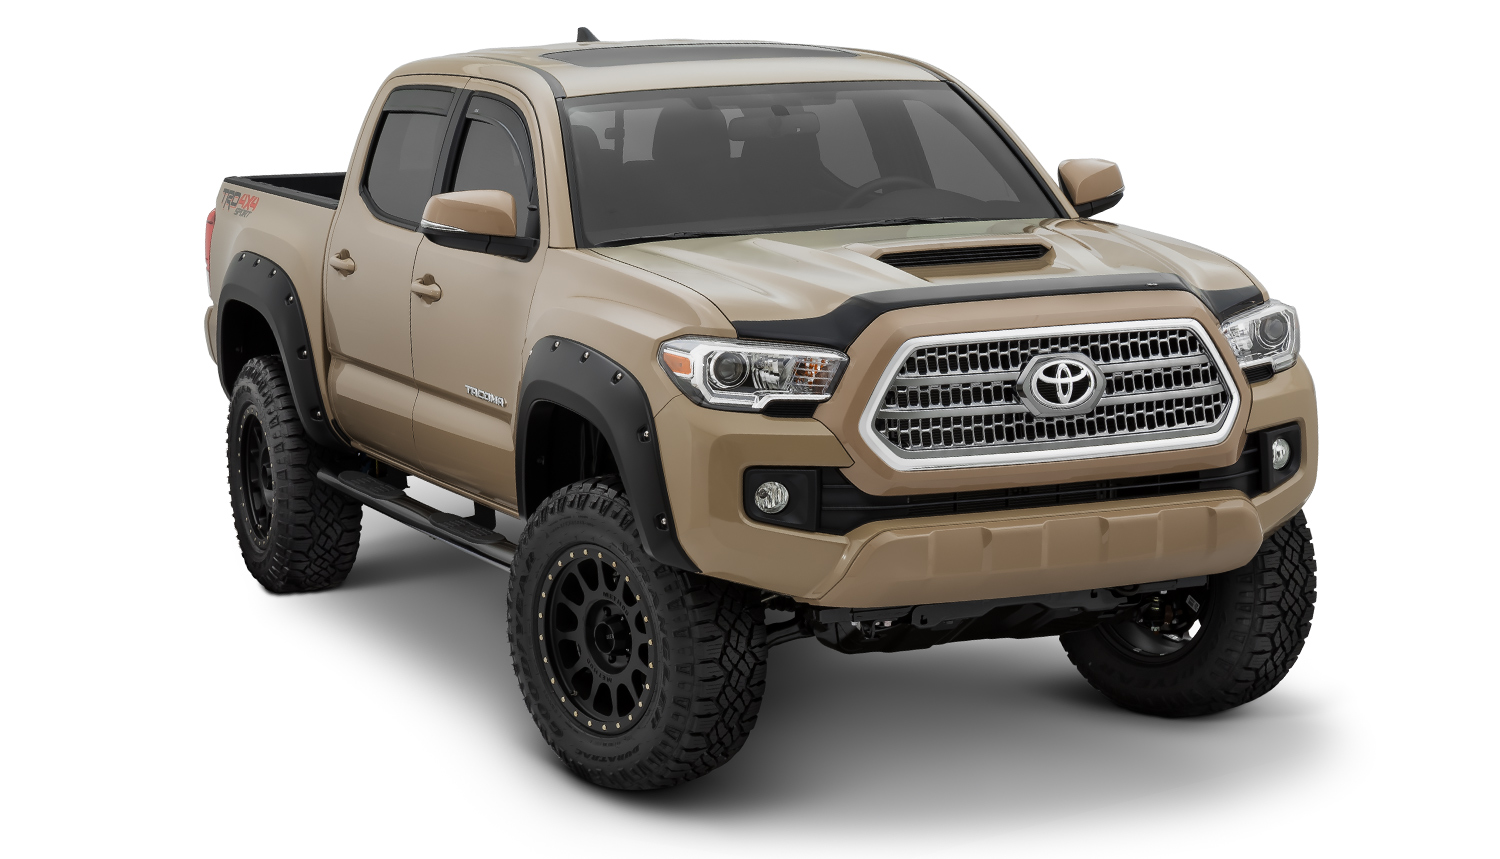 2016 Toyota Tacoma Pocket Style Fender Flares 30922 02 499 00 Pure Tacoma Parts And Accessories For Your Toyota Tacoma